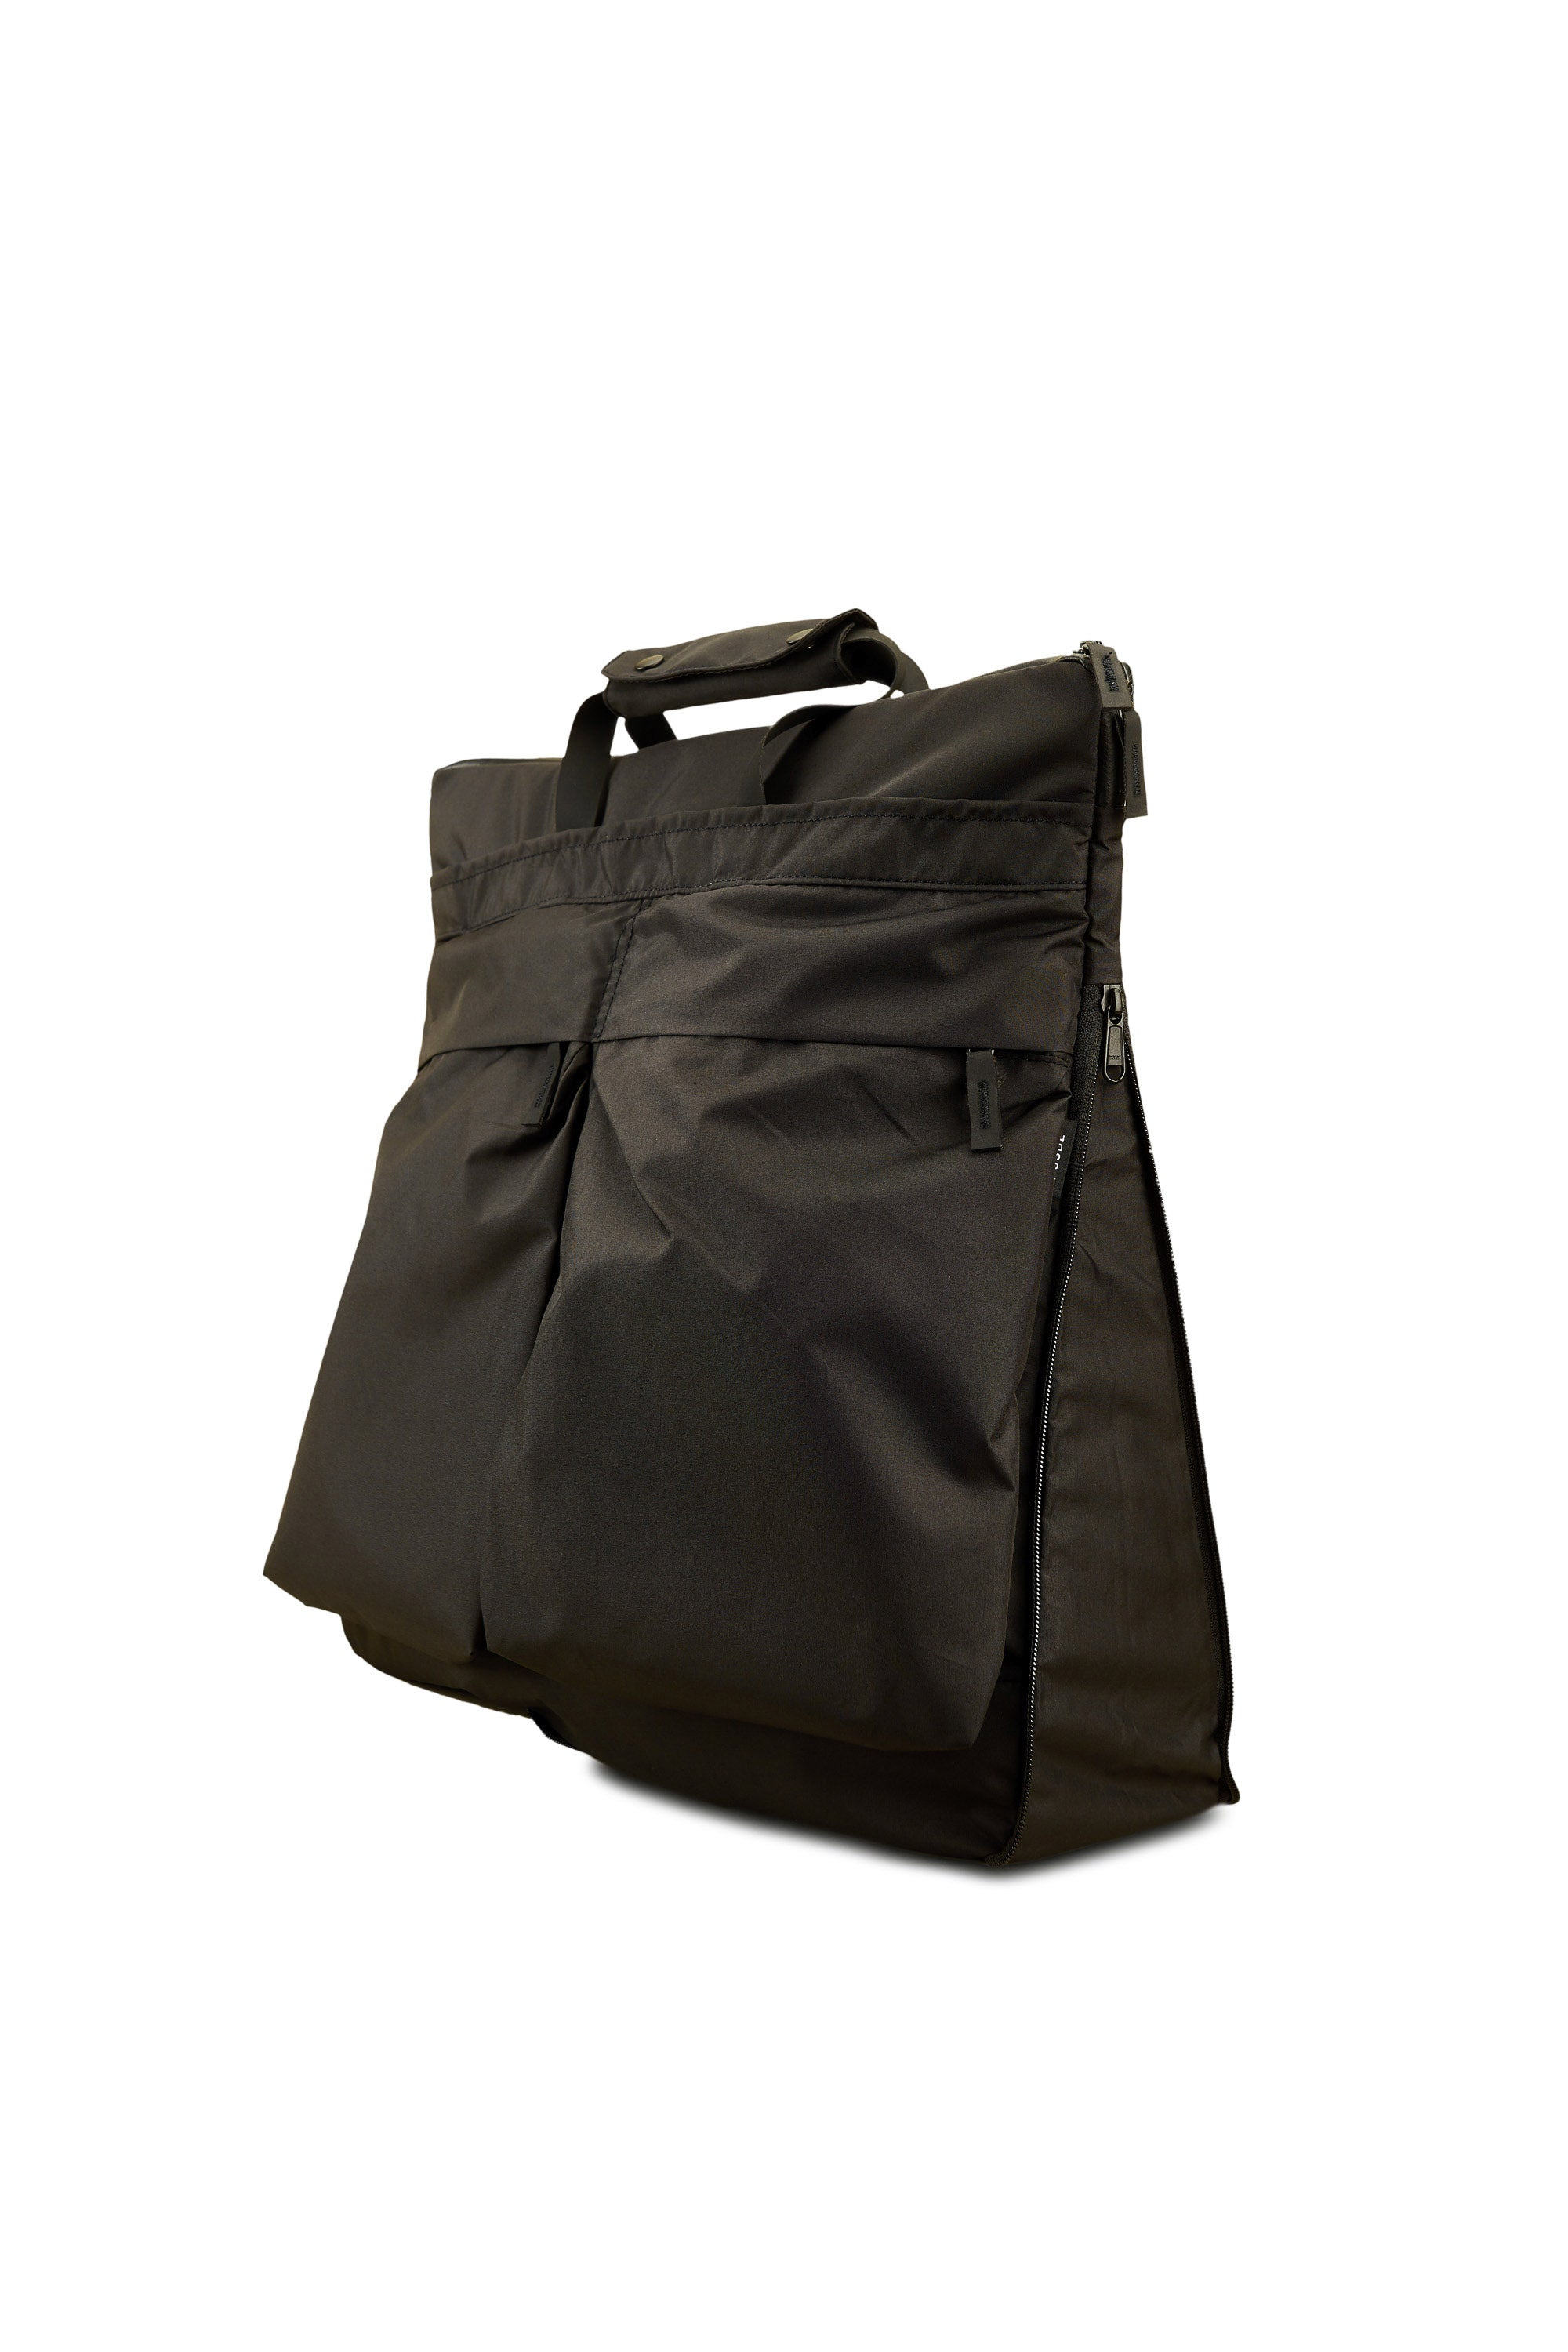 Tote Bag black/olive branch